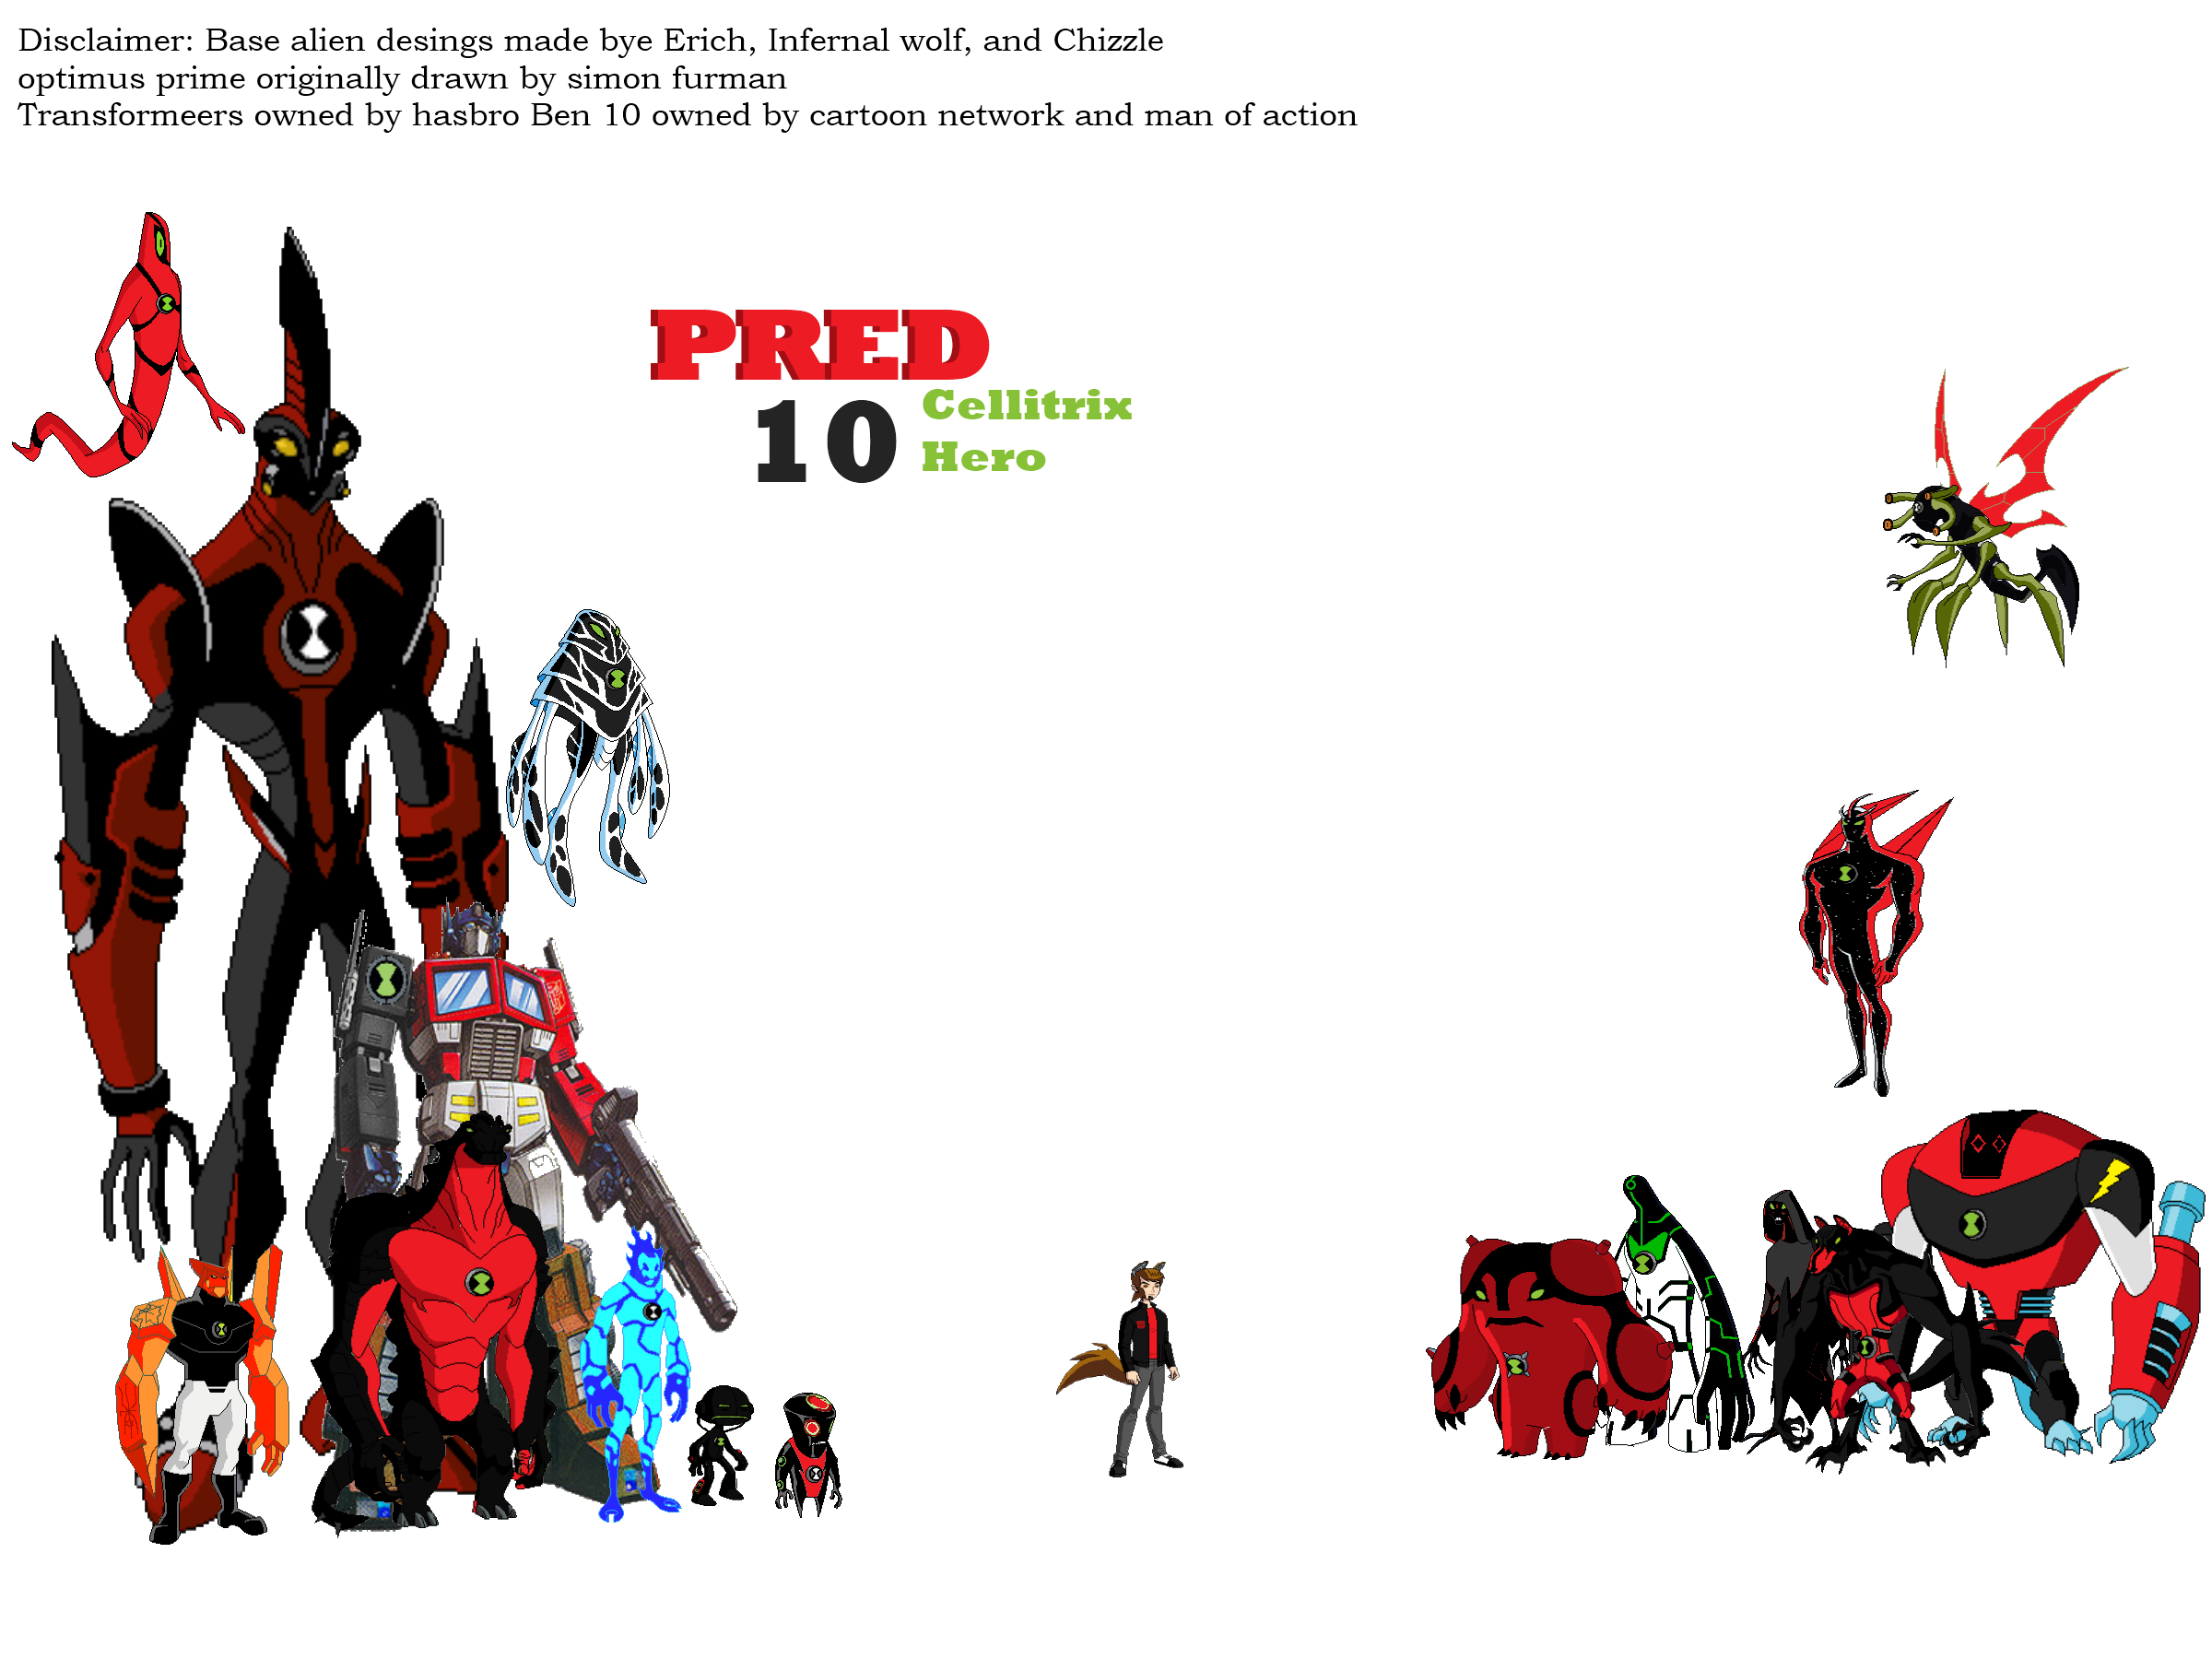 Ben 10 Omniverse All Aliens List With Pictures ✓ Fitrini's